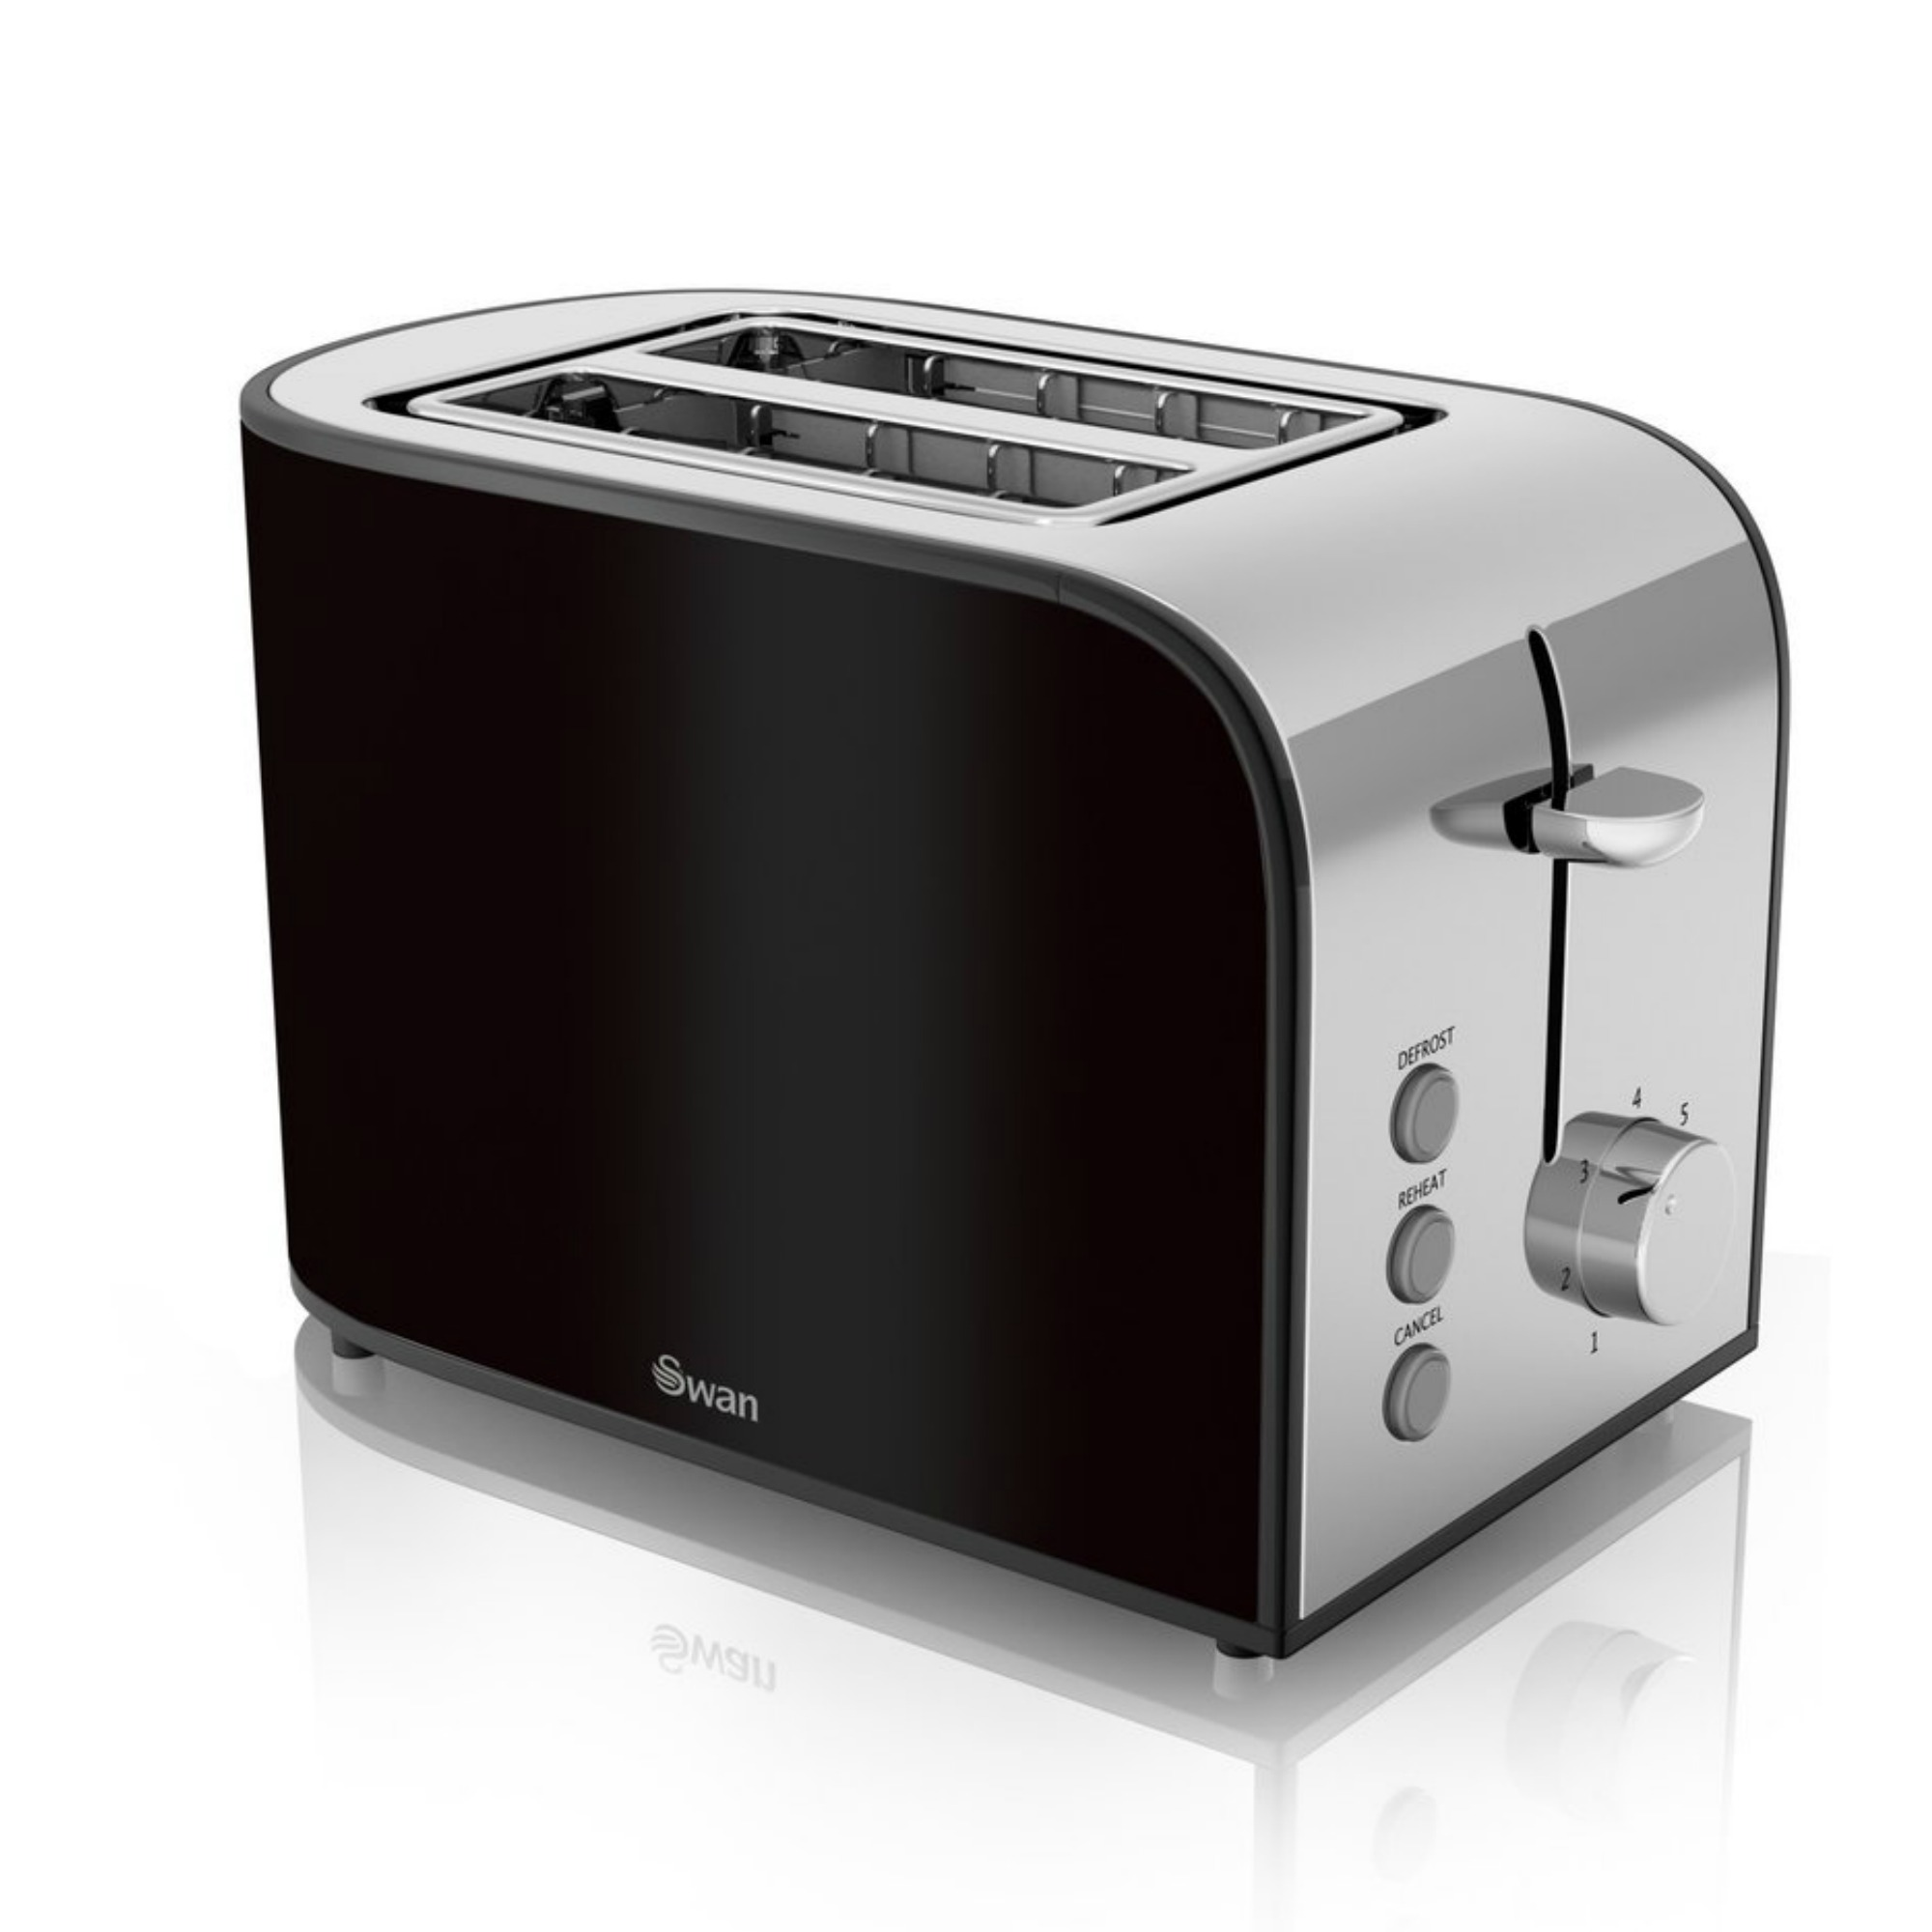 Details about Swan Black Townhouse Pyramid Kettle and 2 Slice Toaster  #191313